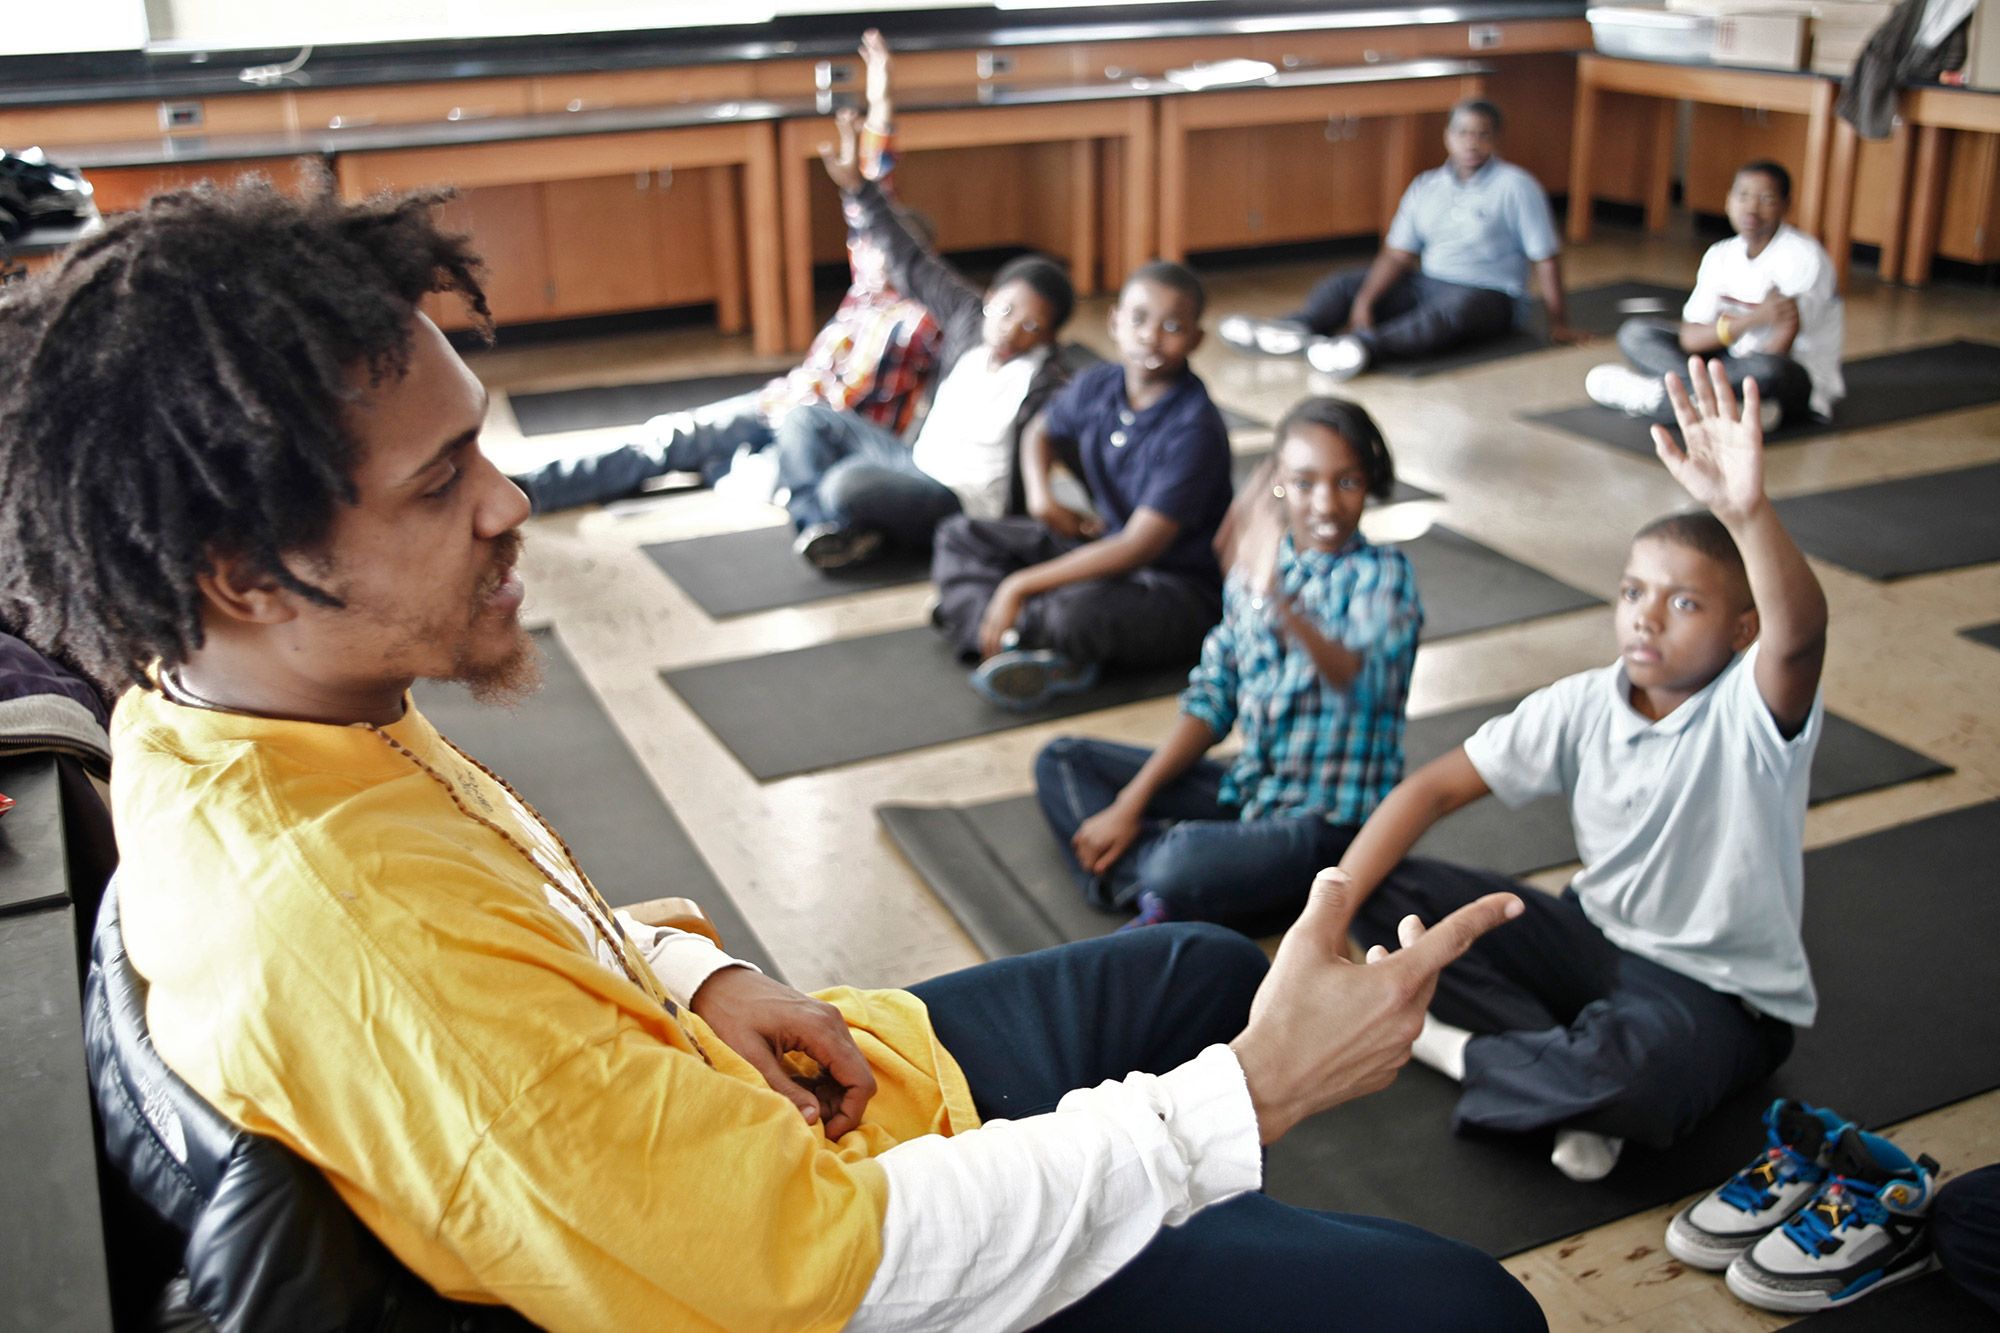 man teaching young people on yoga mats